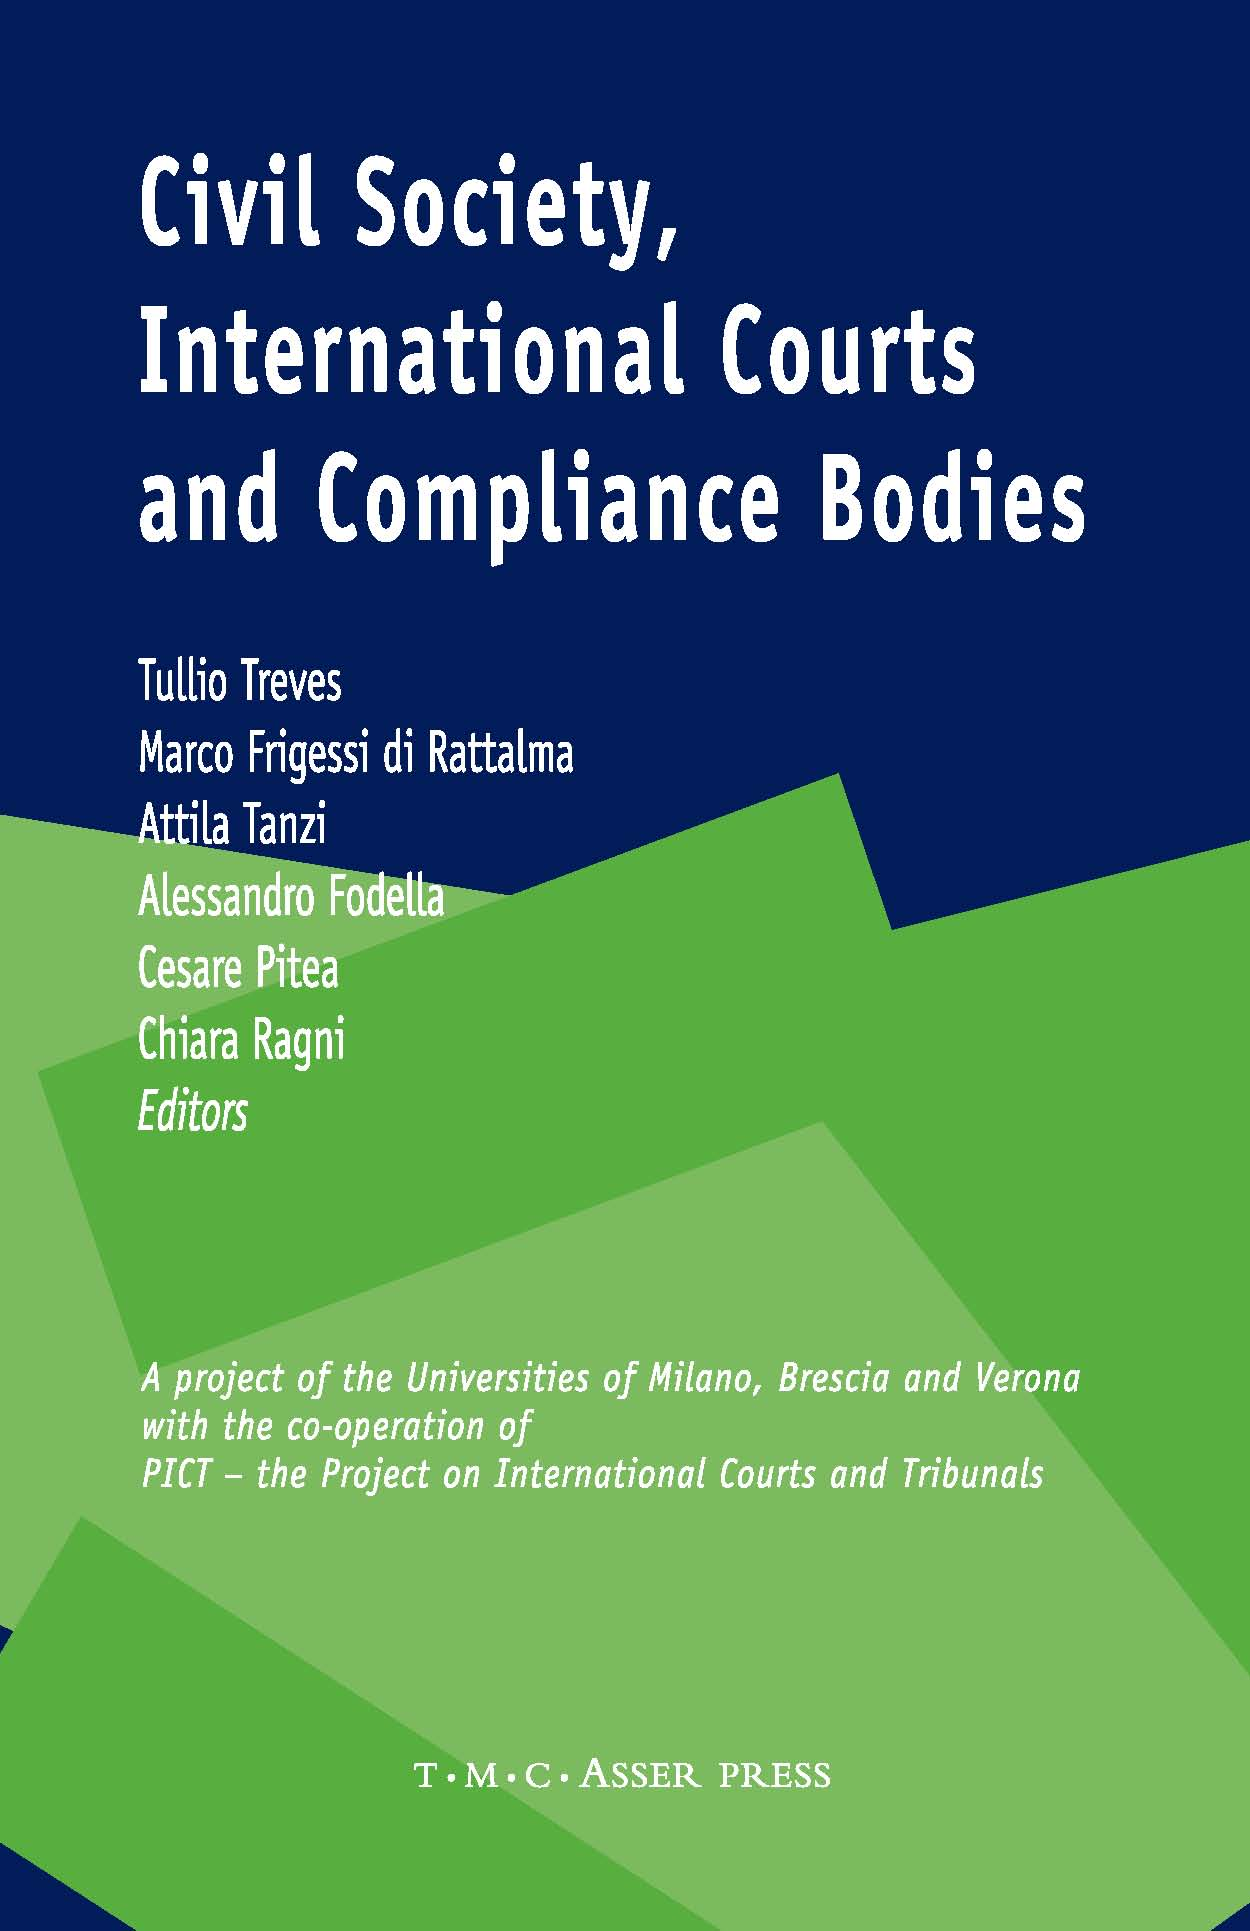 Civil Society, International Courts and Compliance Bodies